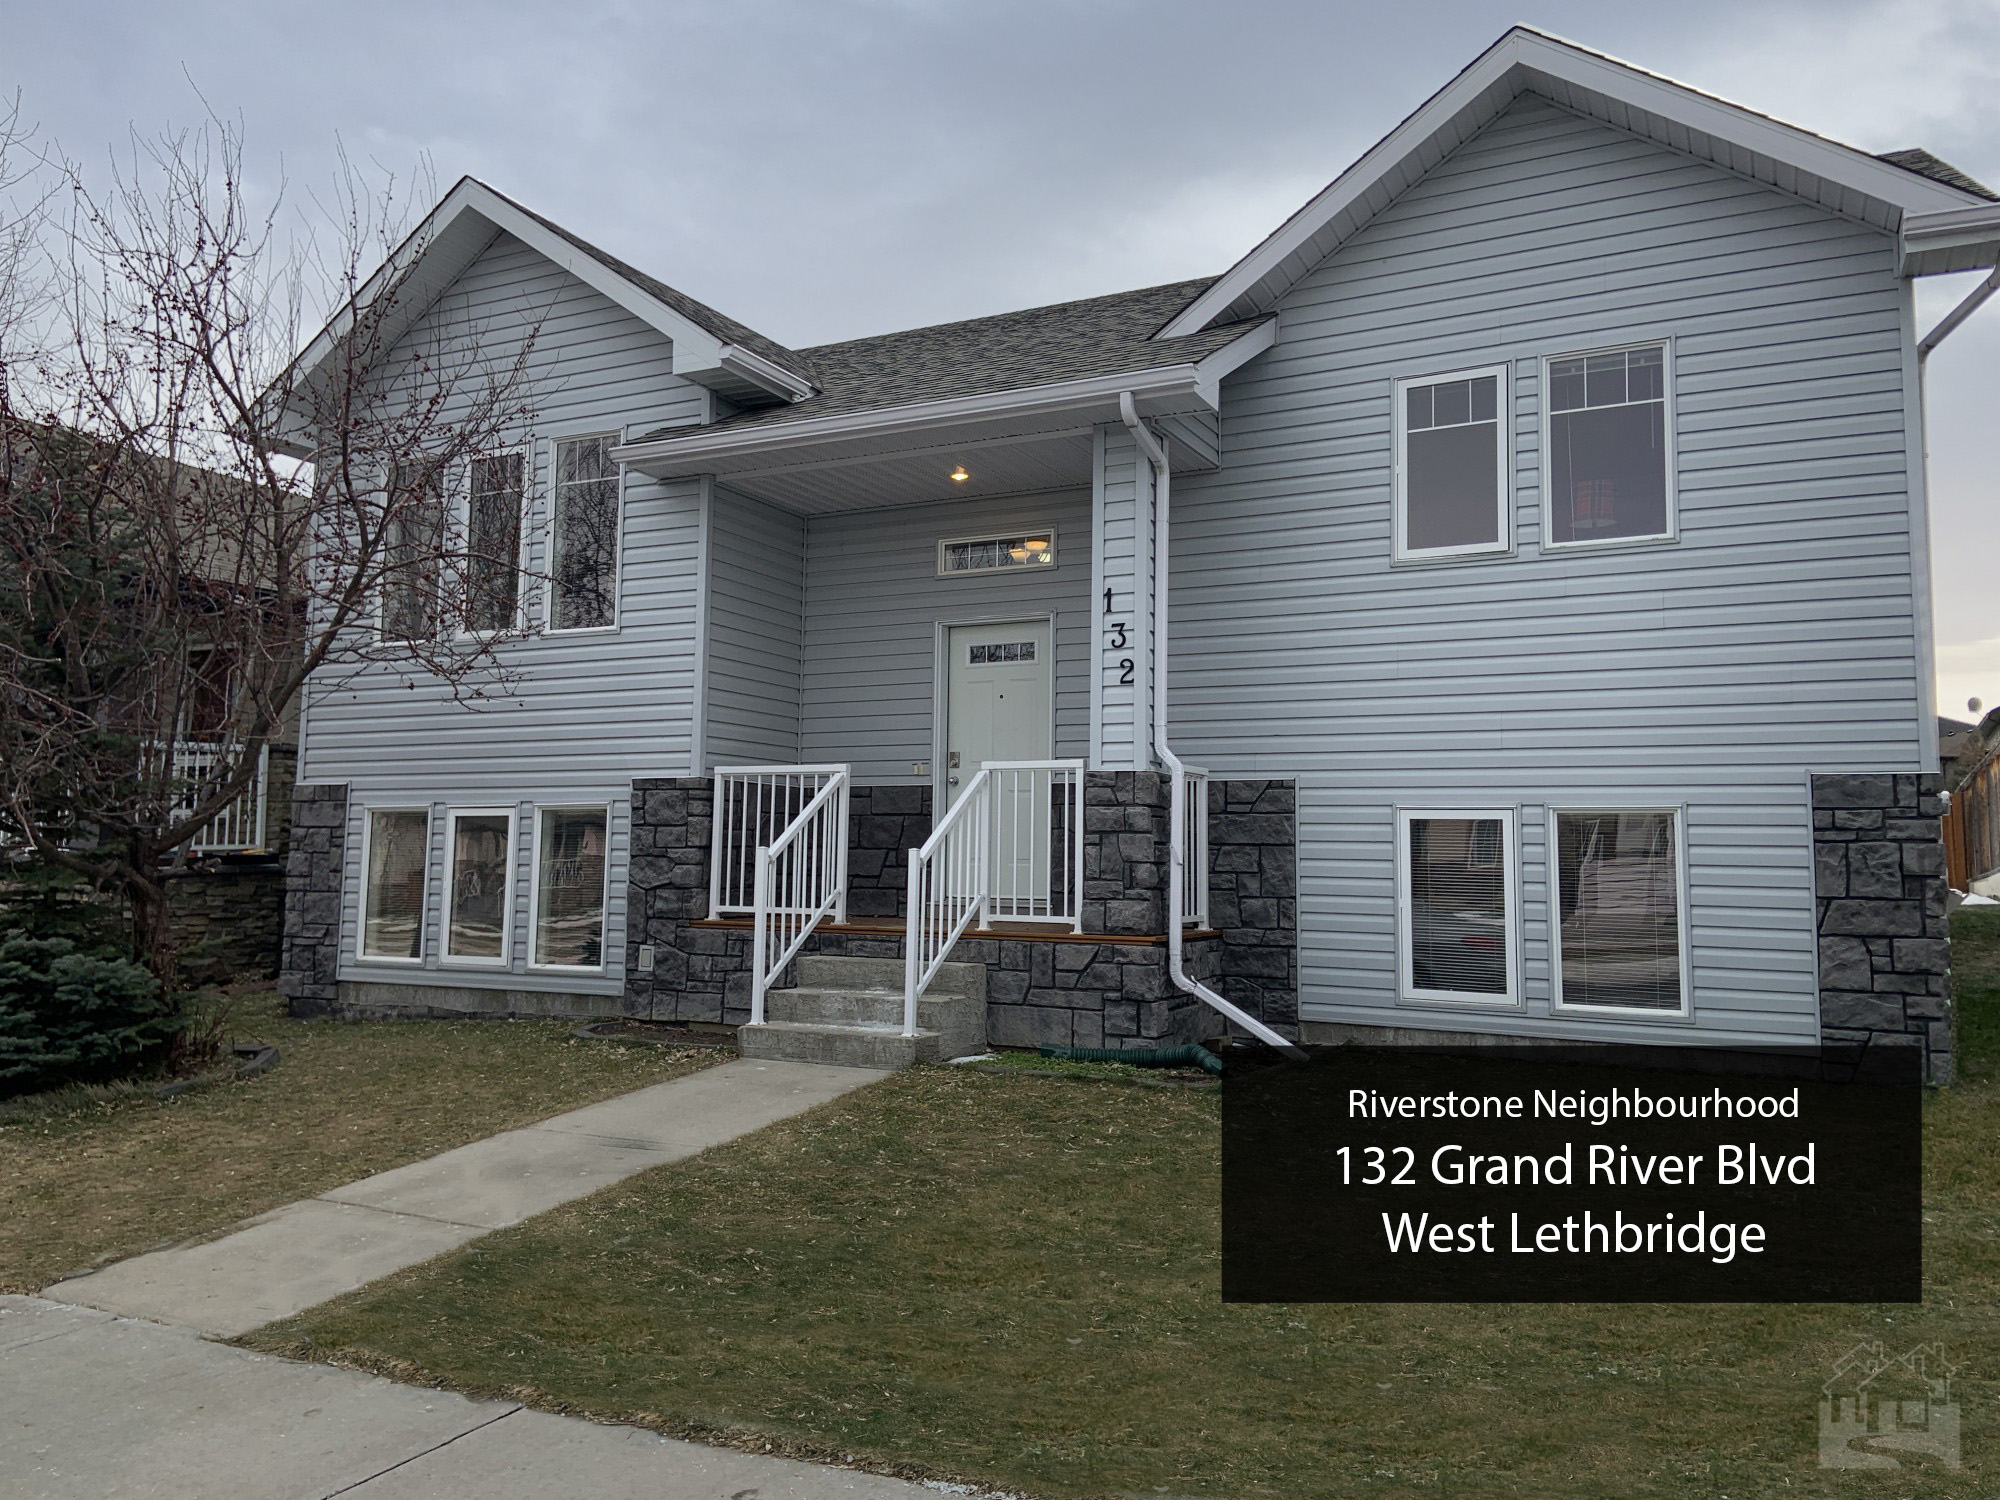 132 Grand River Blvd West Lethbridge (Mainfloor Suite) Cover image